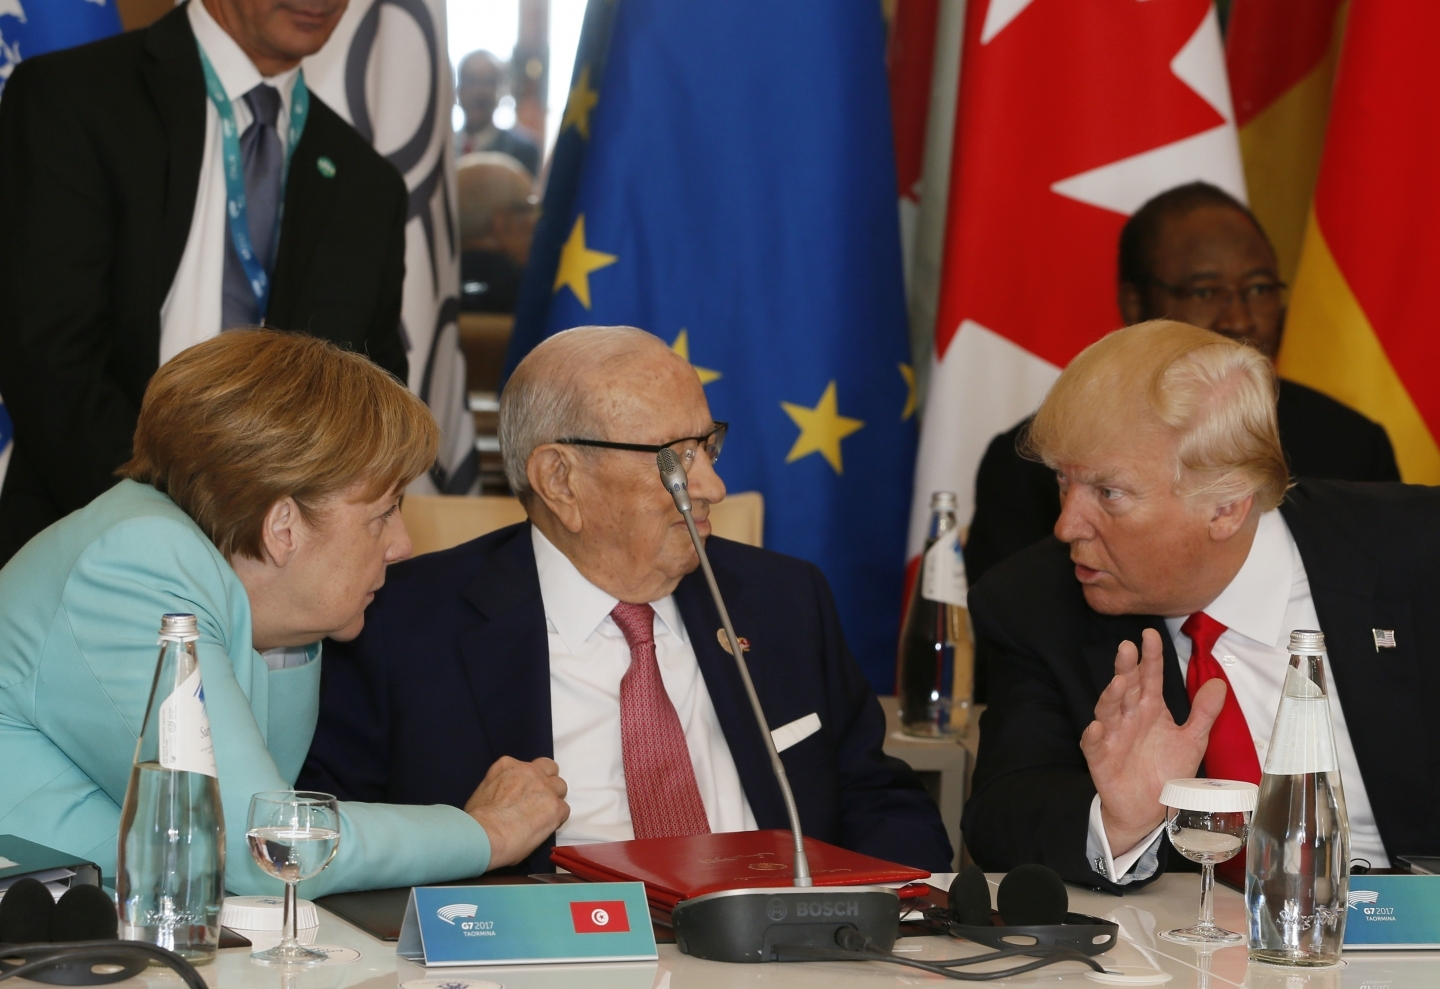 German Chancellor Angela Merkel and US President Donald Trump speak with Tunisian President Beji Caid Essebsi at roundtable during summit in Italy (AP Photo/Domenico Stinellis)